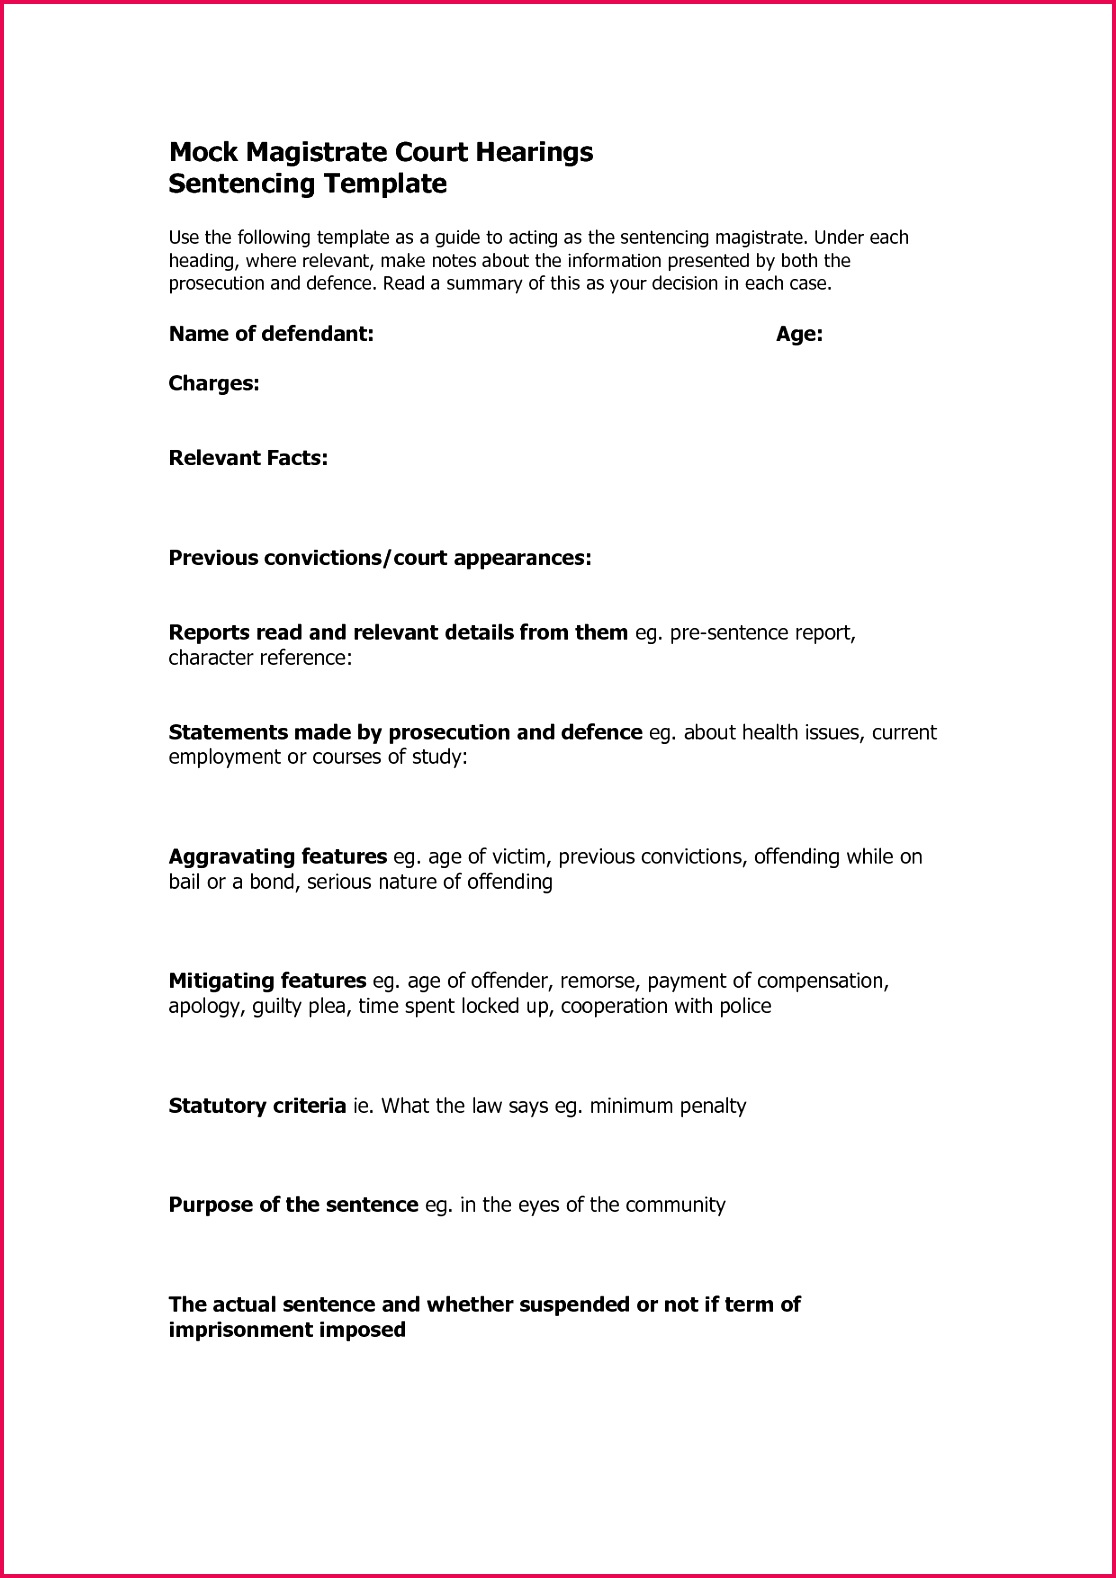 Clearance Certificate Template Fascinating Sample Police Clearance Certificate In Philipp Awesome Clearance Certificate Template top